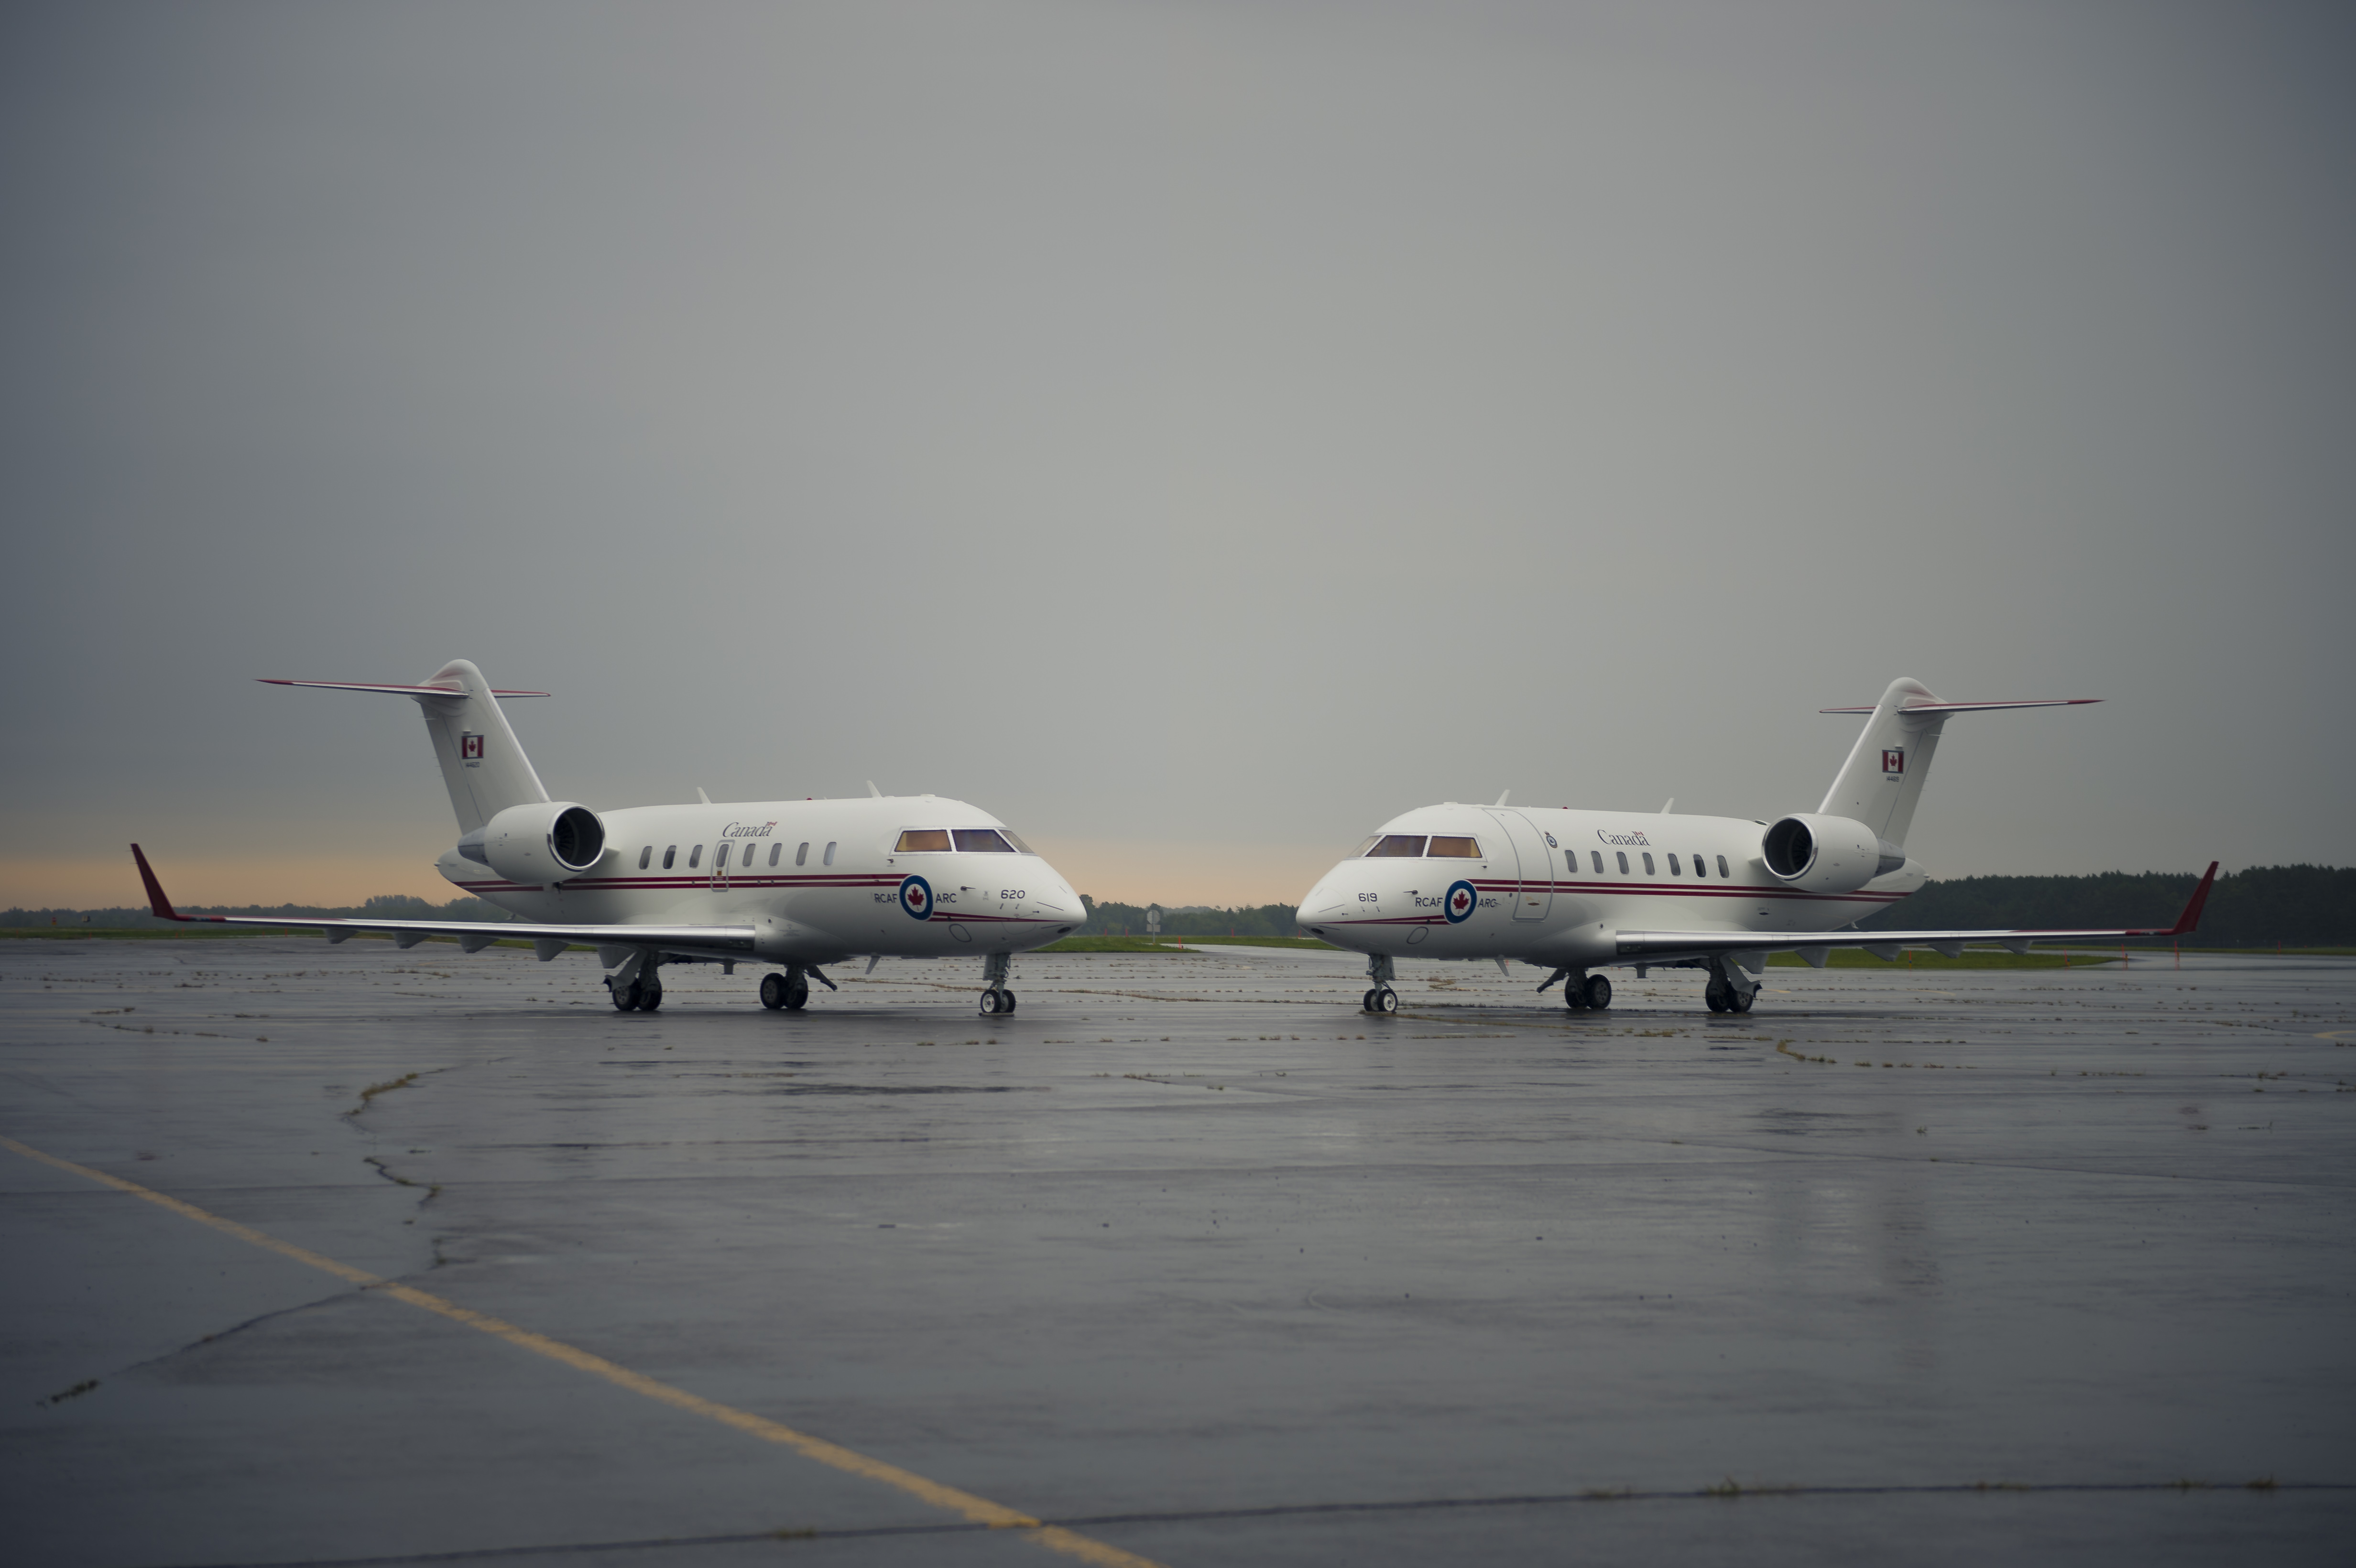 Two white medium-sized jet aircraft on a runway.